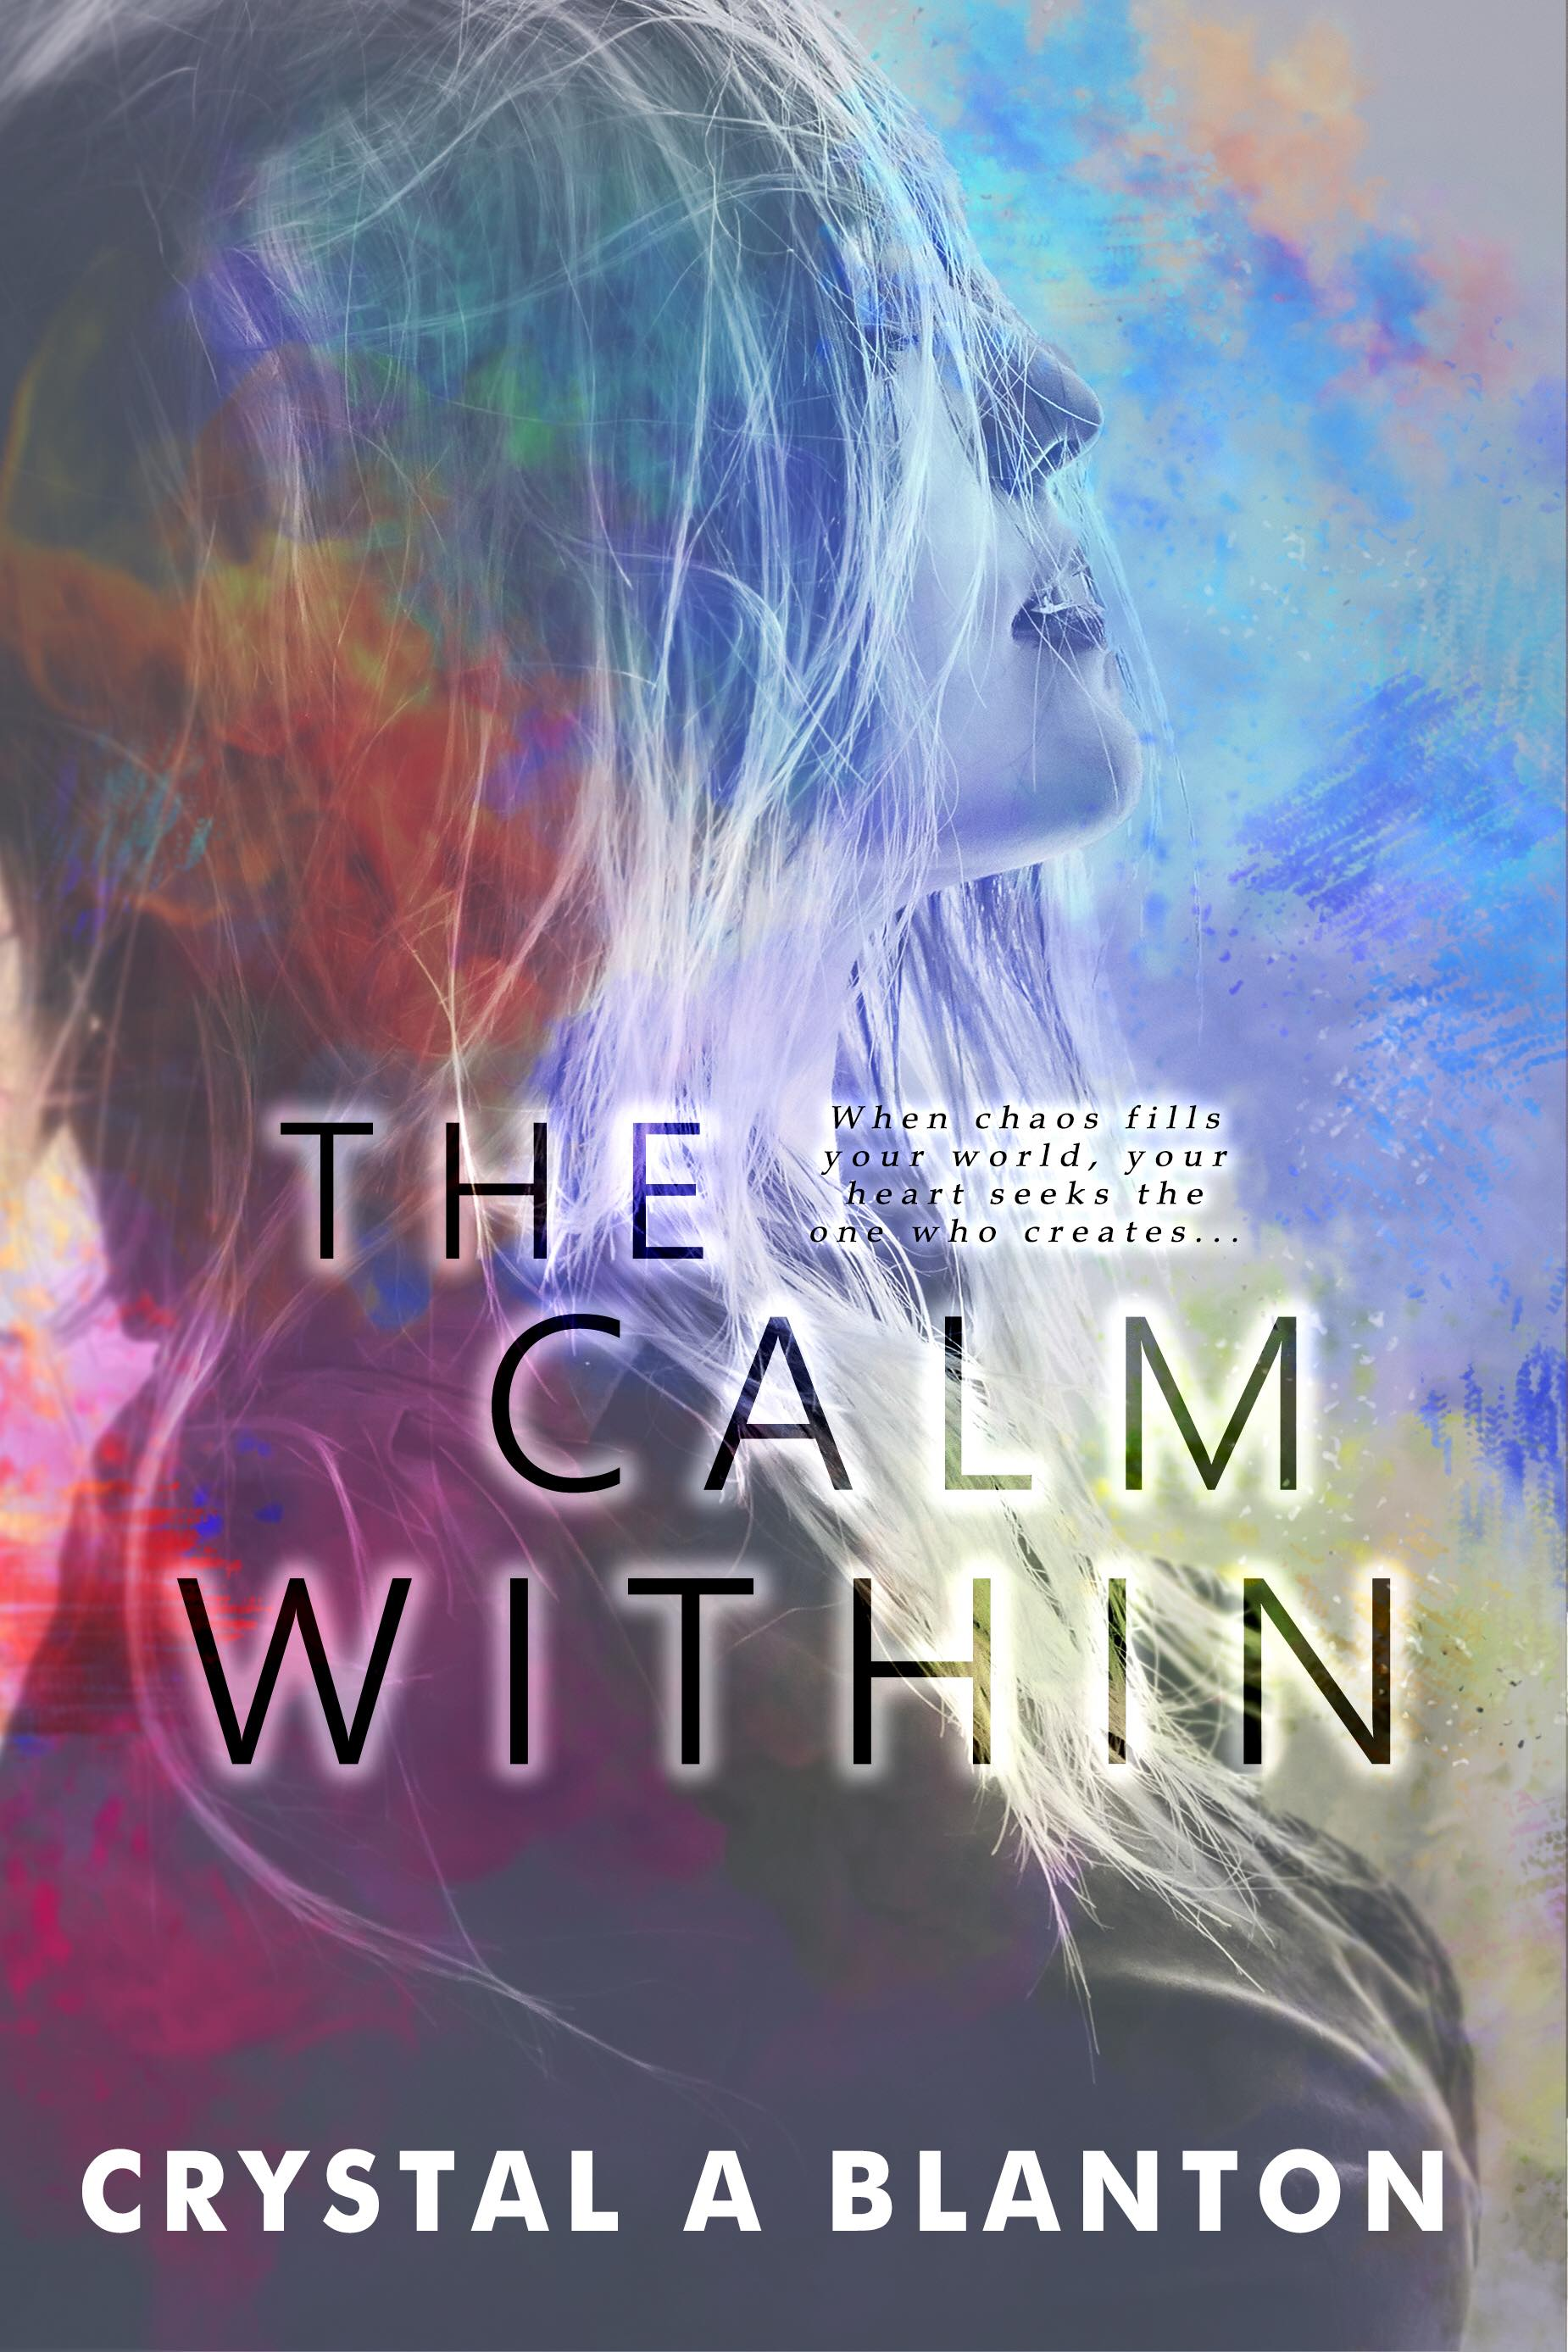 The Calm Within - By Crystal A Blanton